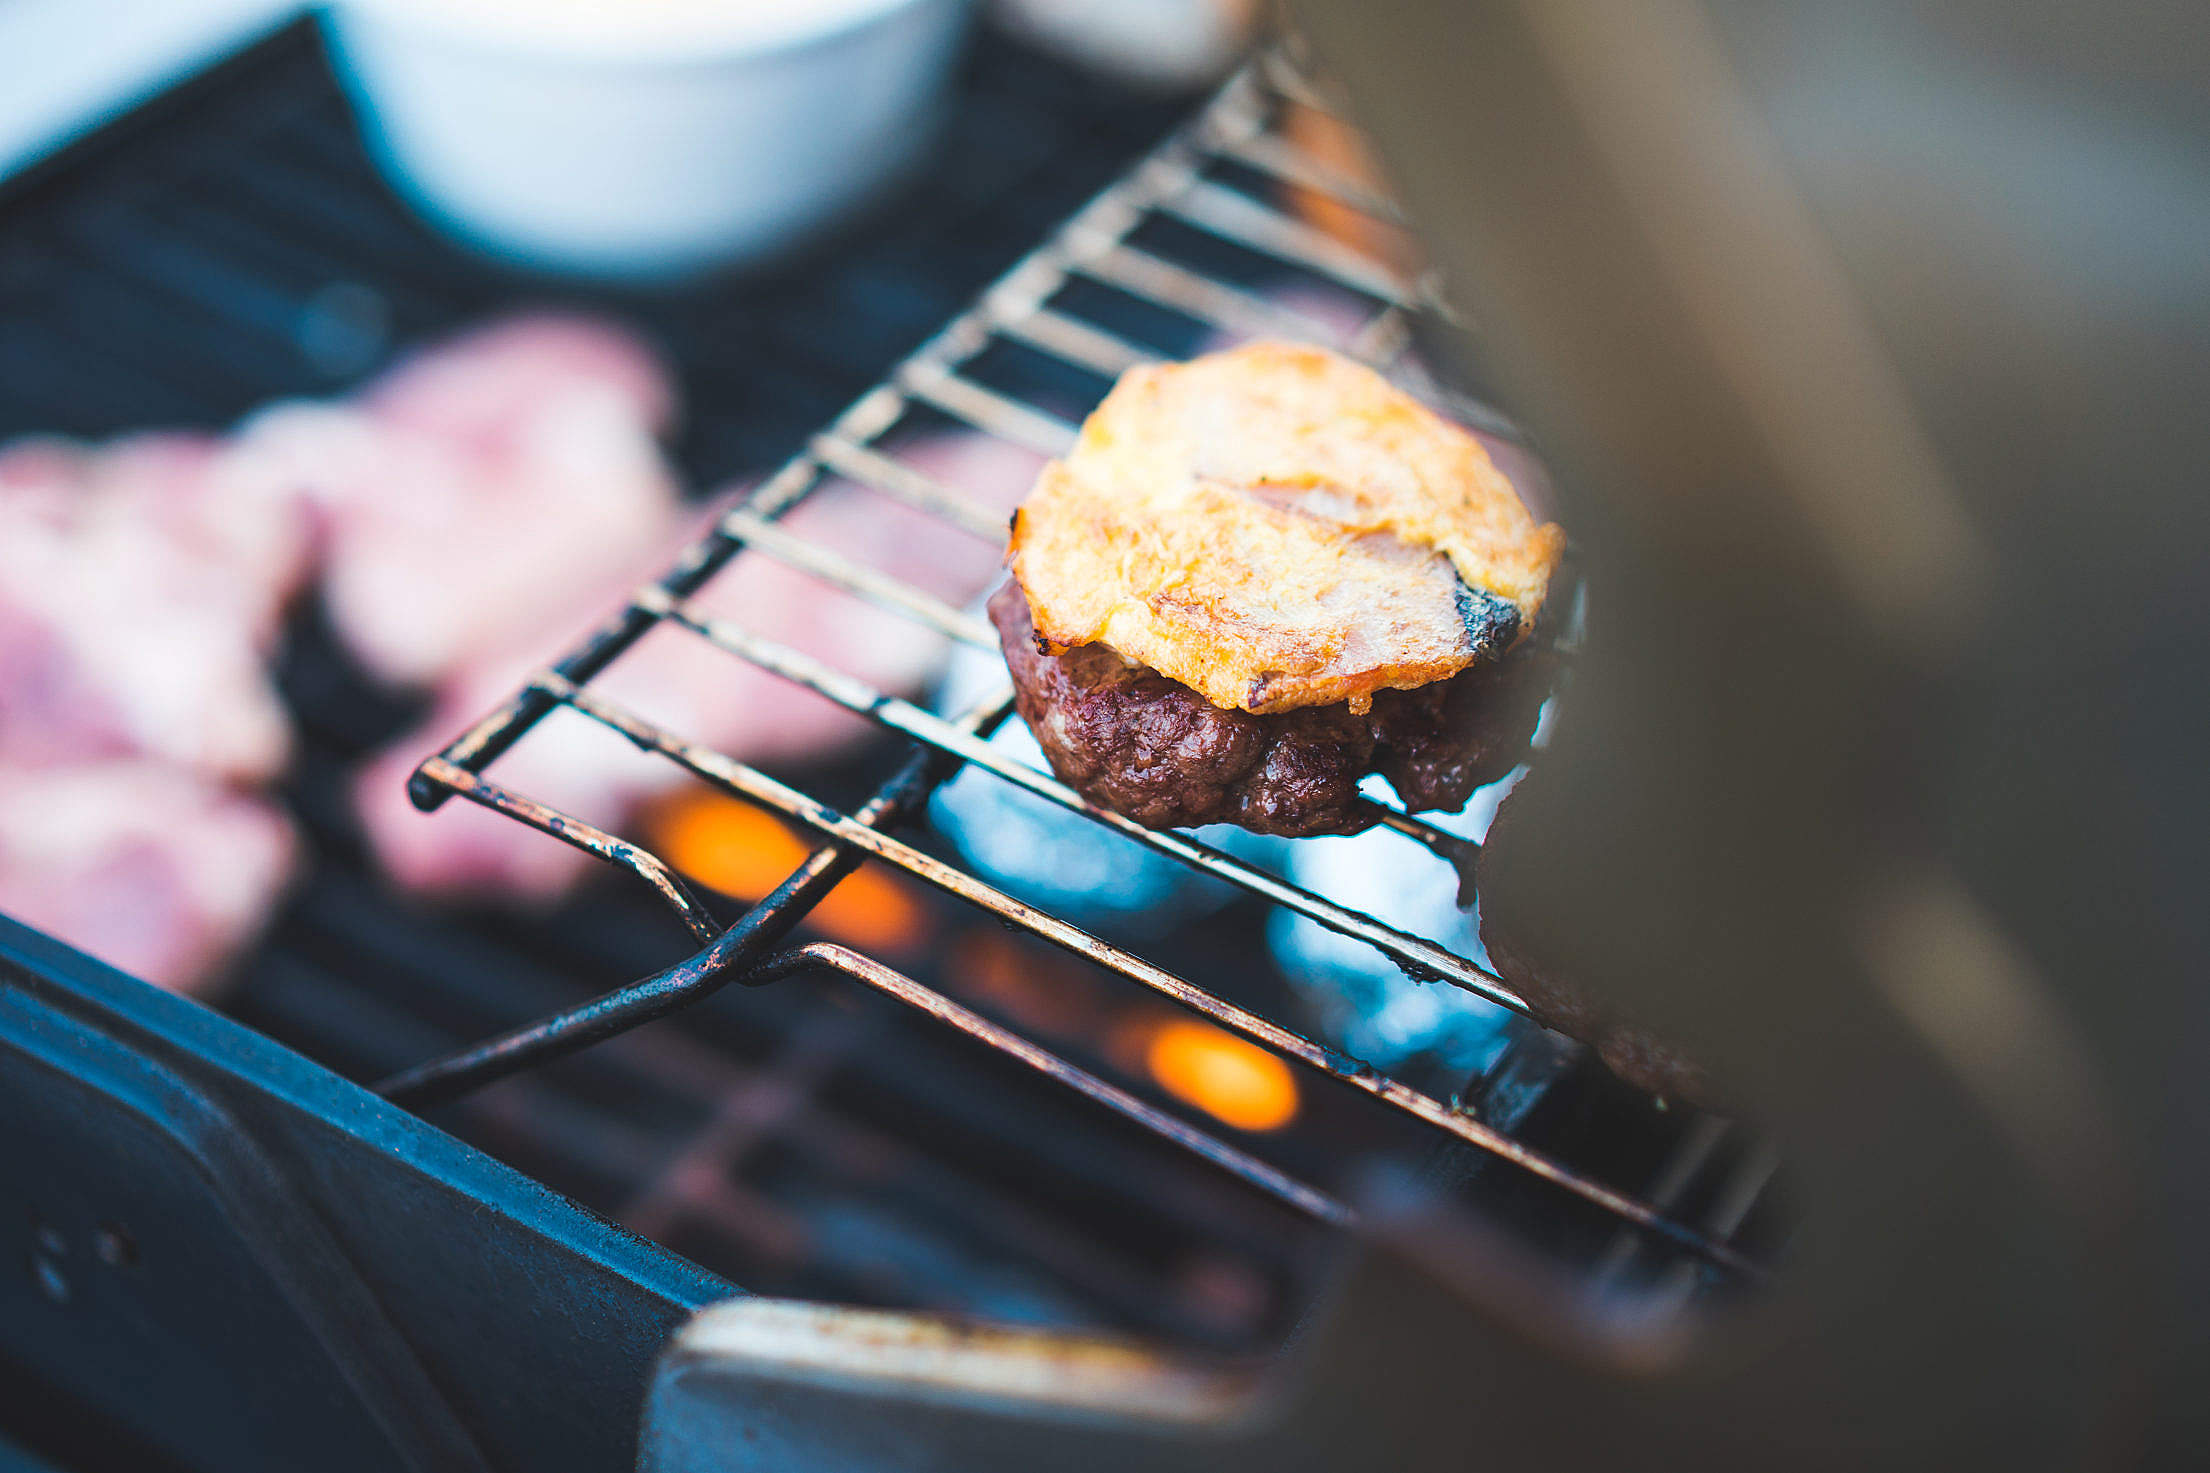 Hamburger Meat on the BBQ Grill Free Stock Photo